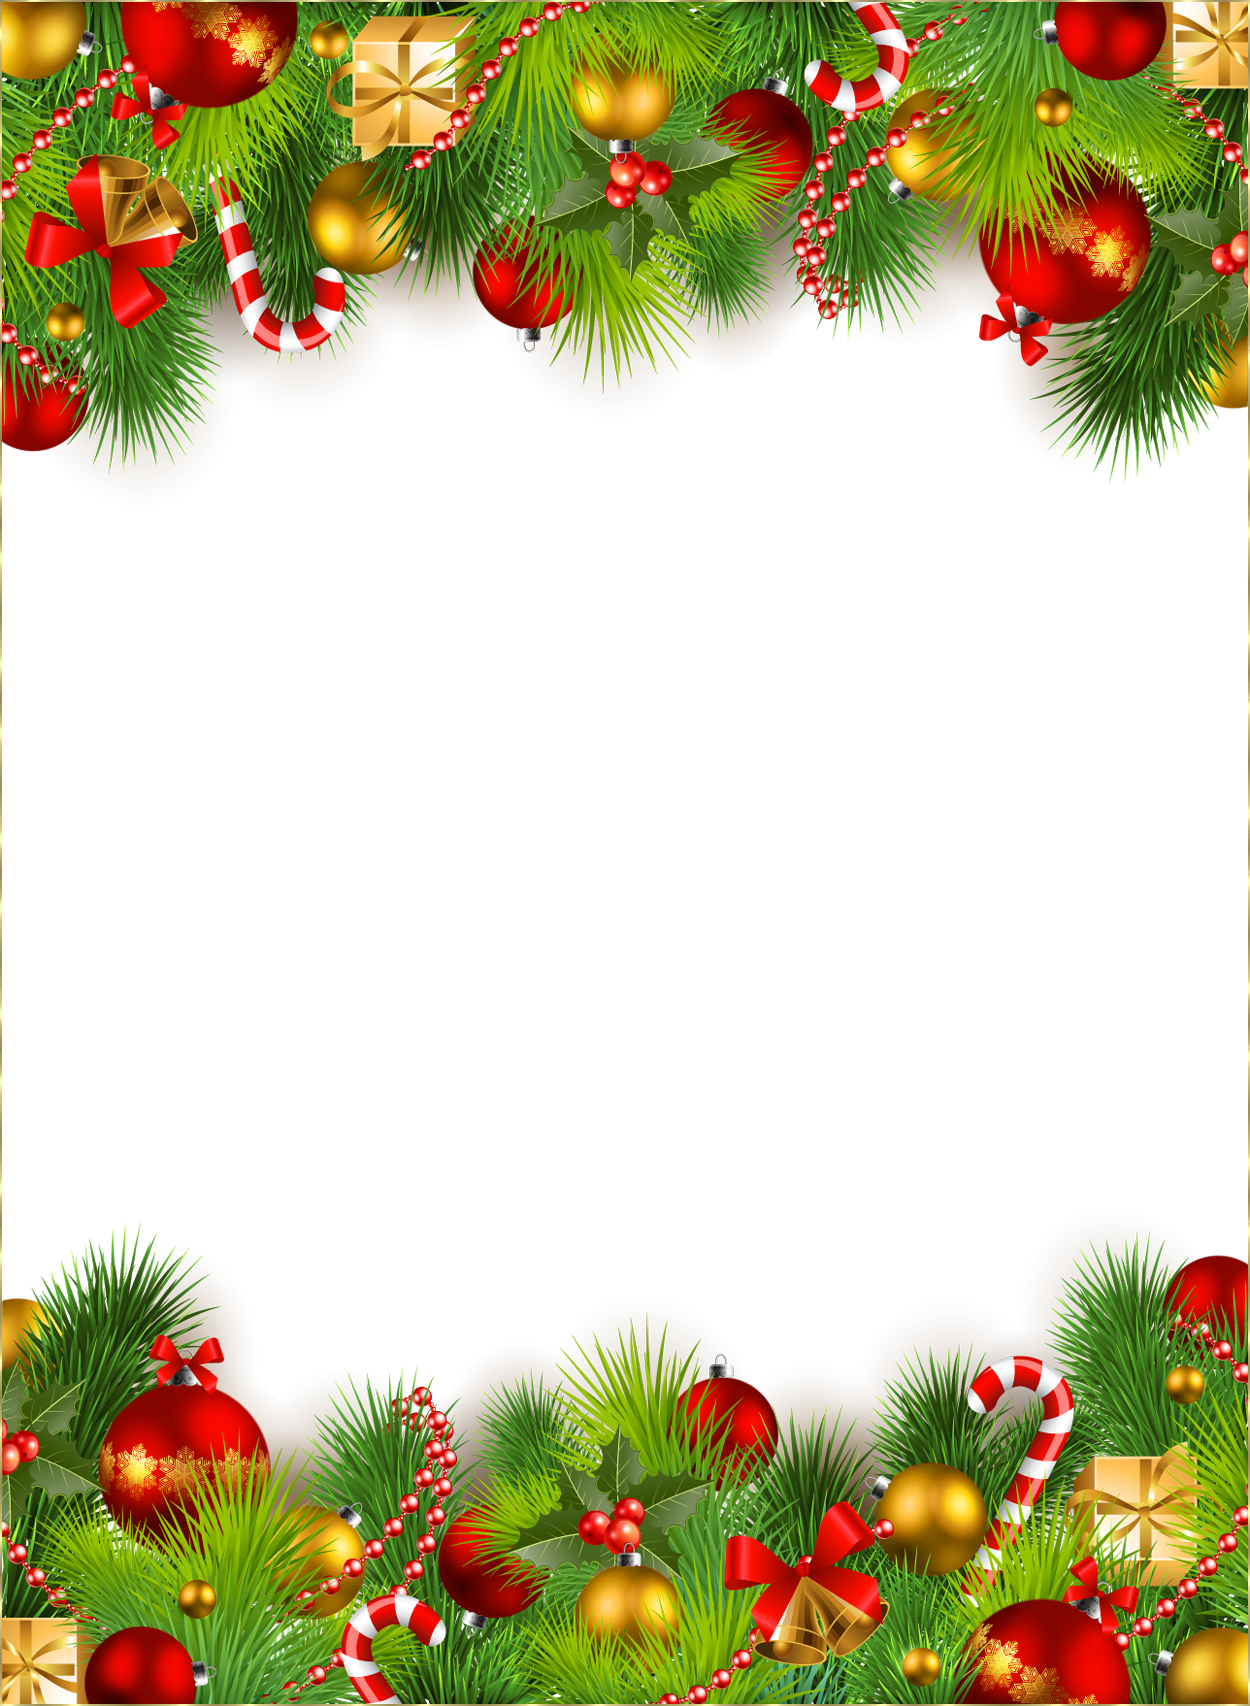 decorative christmas border festival collections #9603